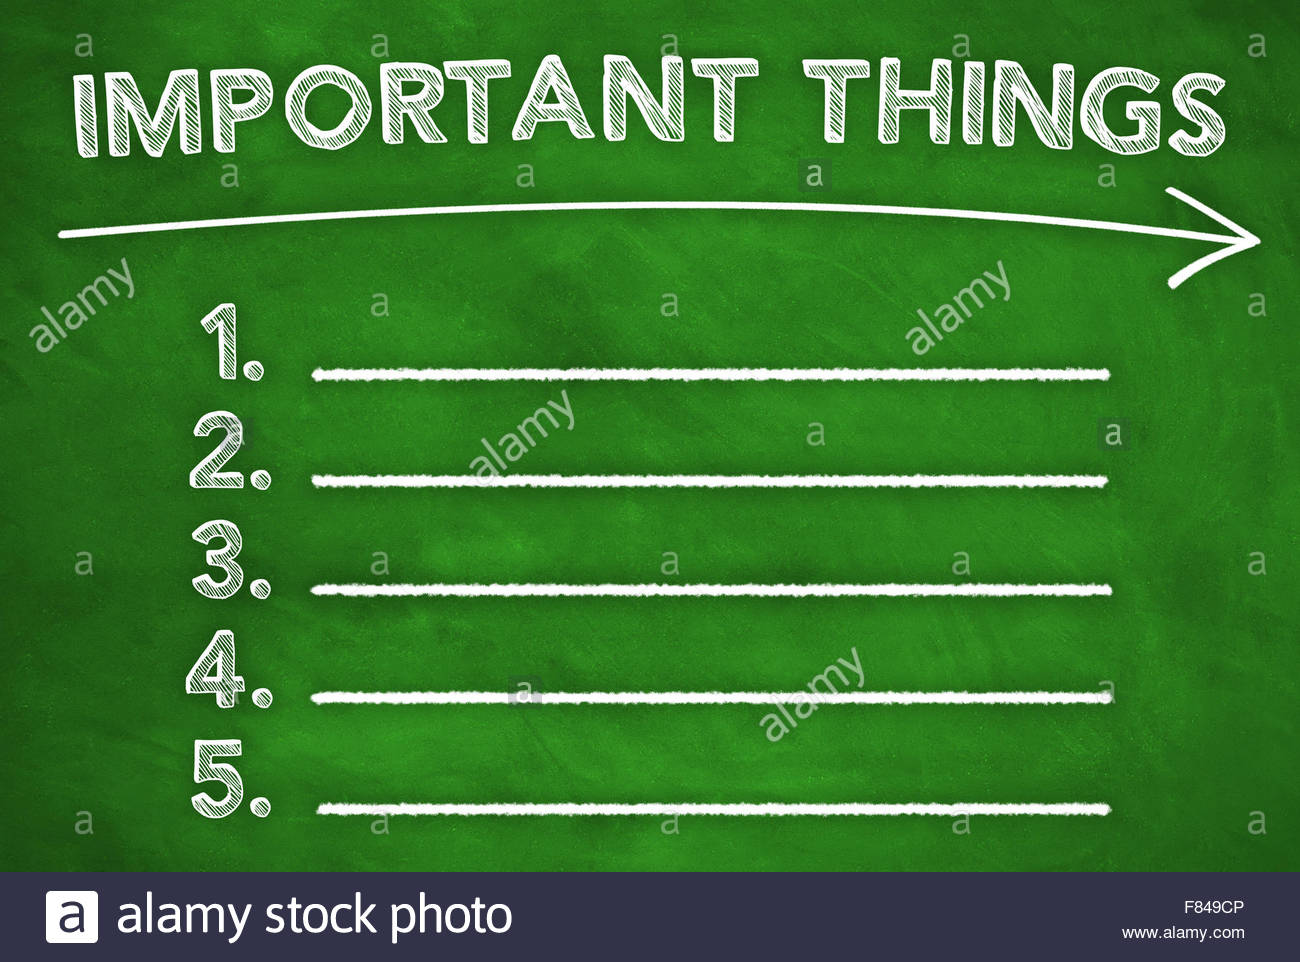 Important Things - Stock Image